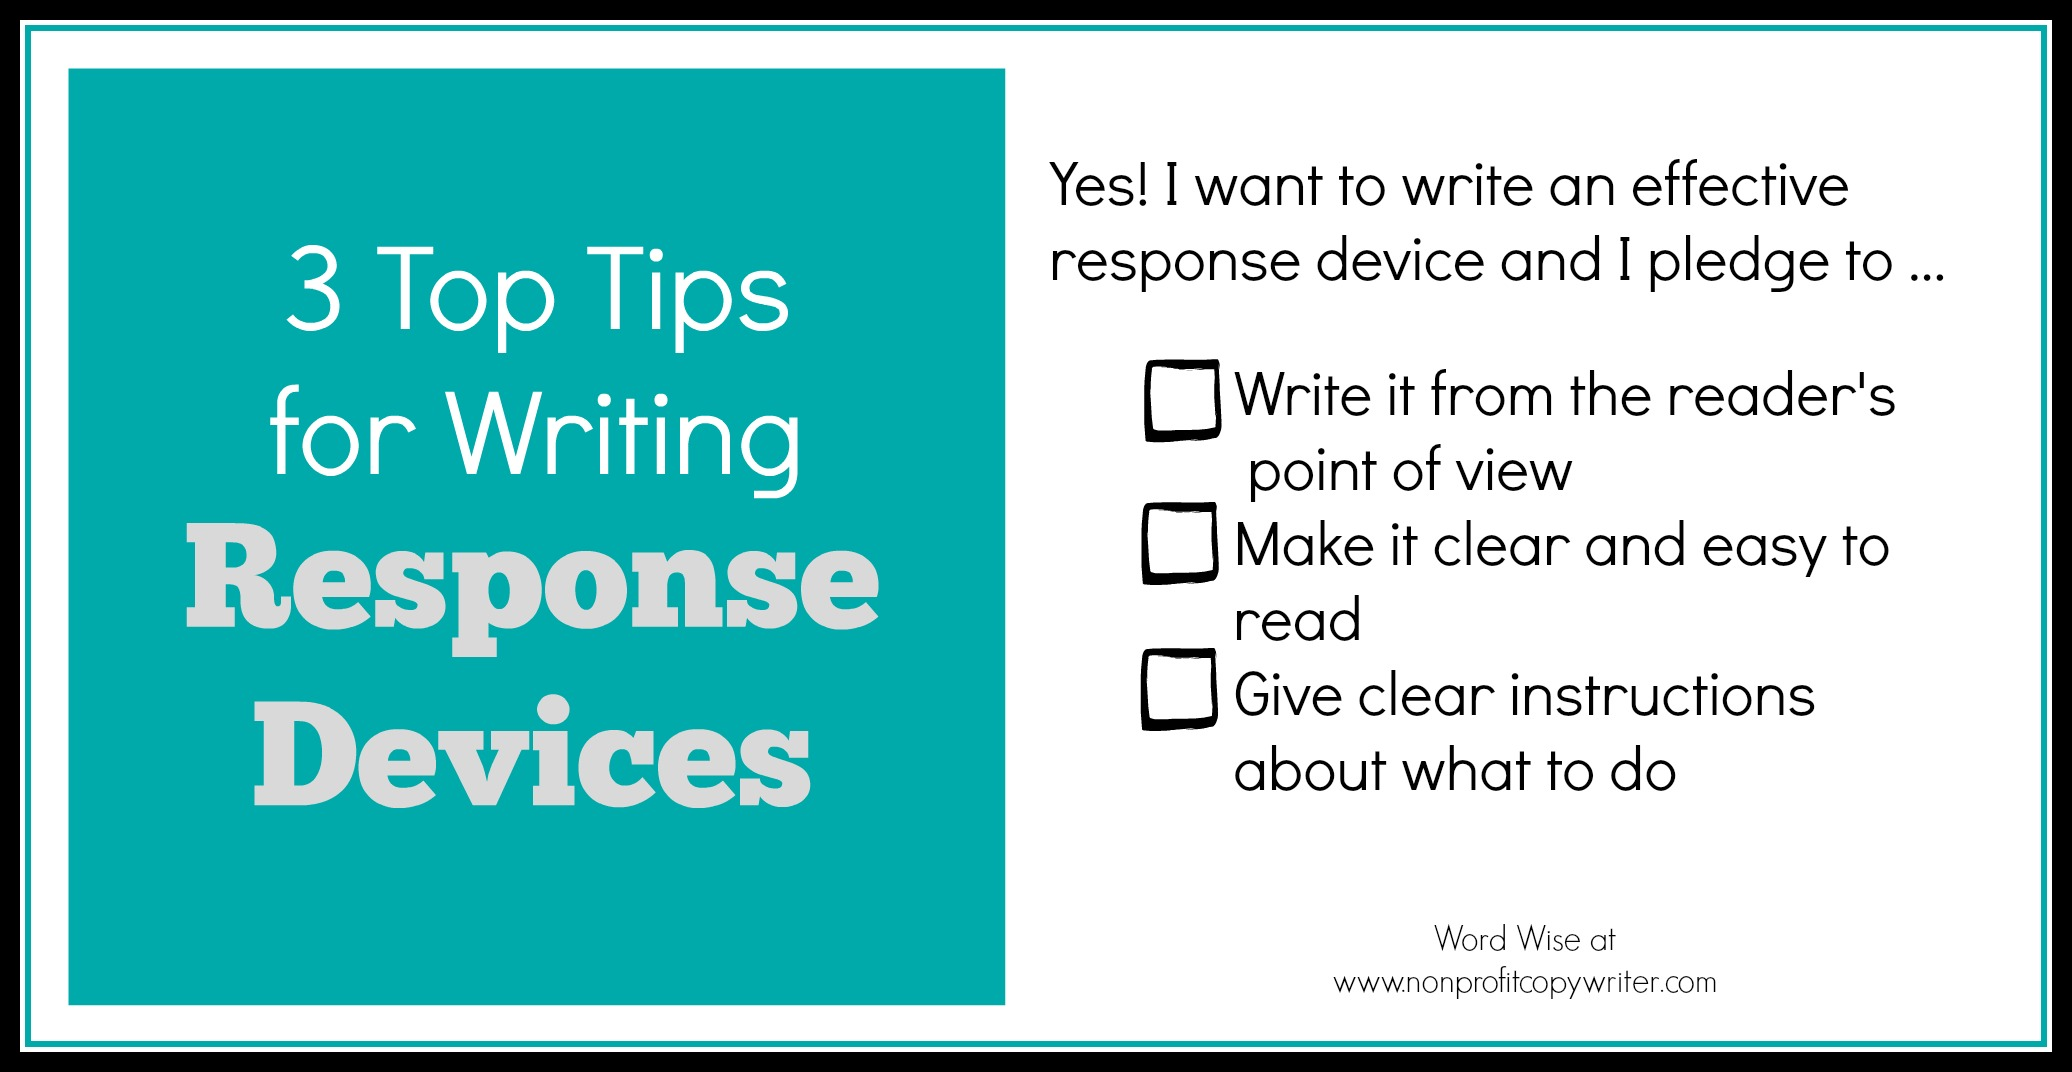 3 tips for writing effective response devices with Word Wise at Nonprofit Copywriter